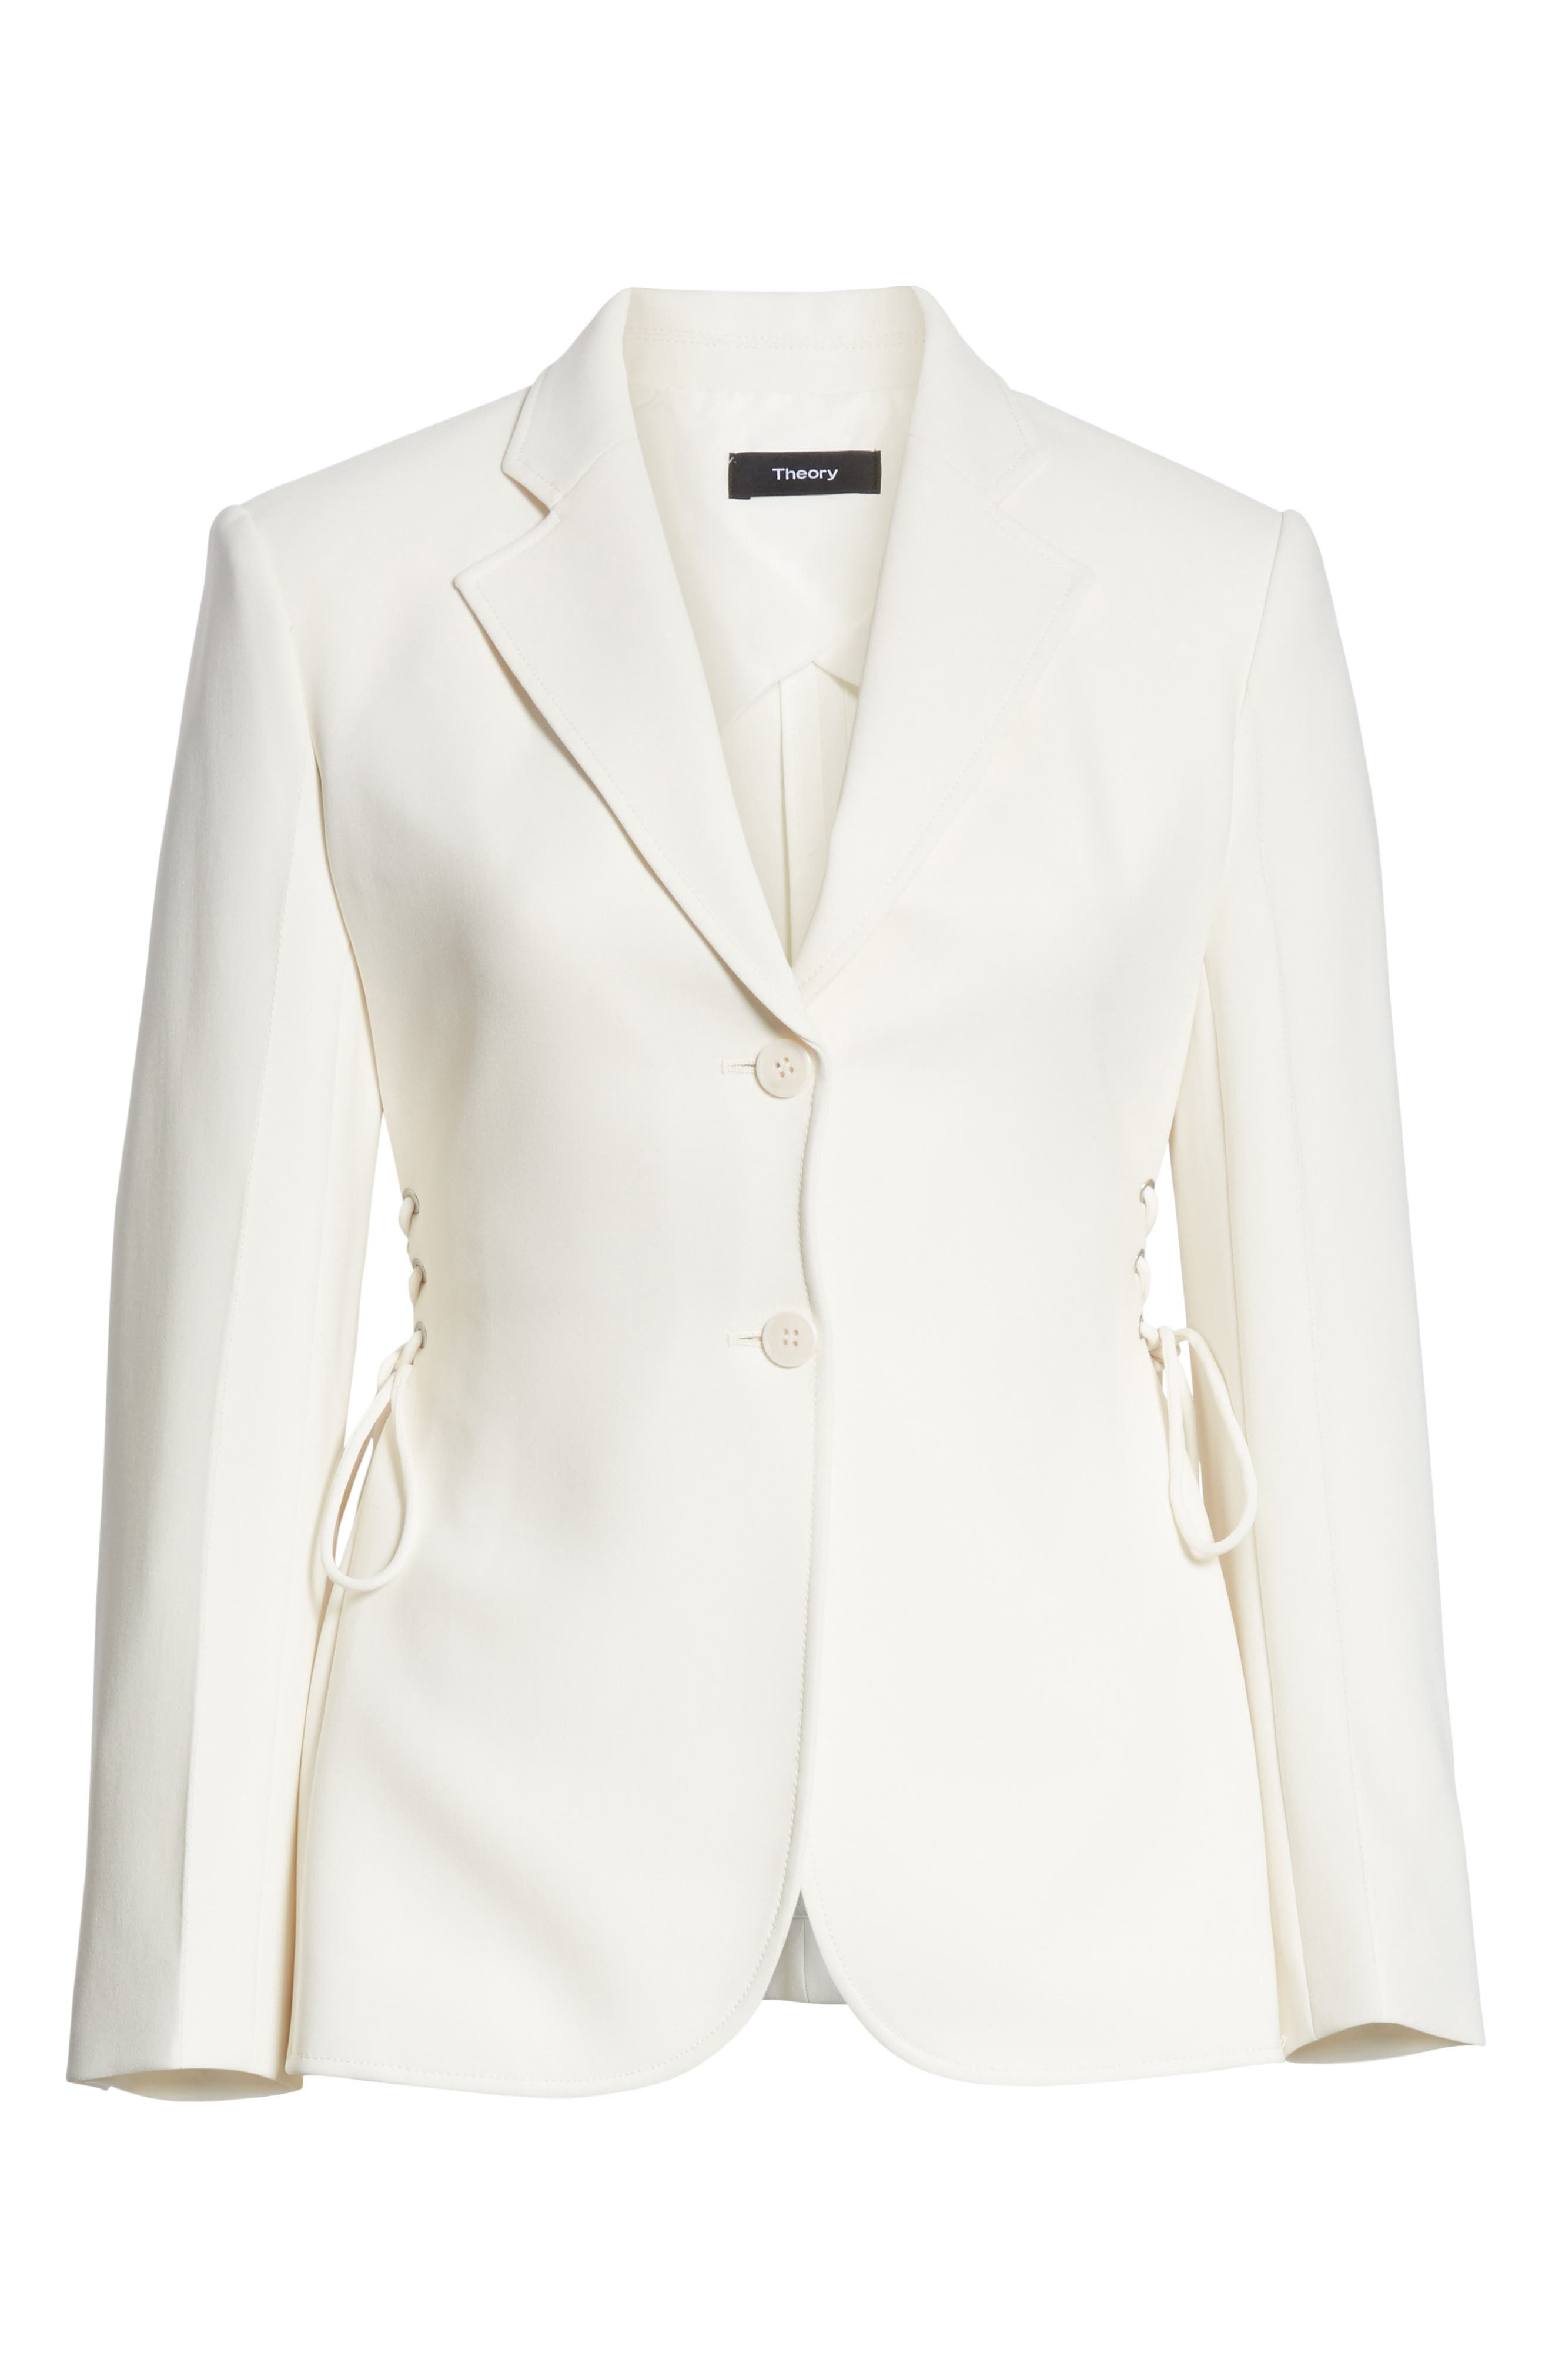 Admiral Crepe Lace-Up Suit Jacket,                             Alternate thumbnail 6, color,                             Warm Ivory